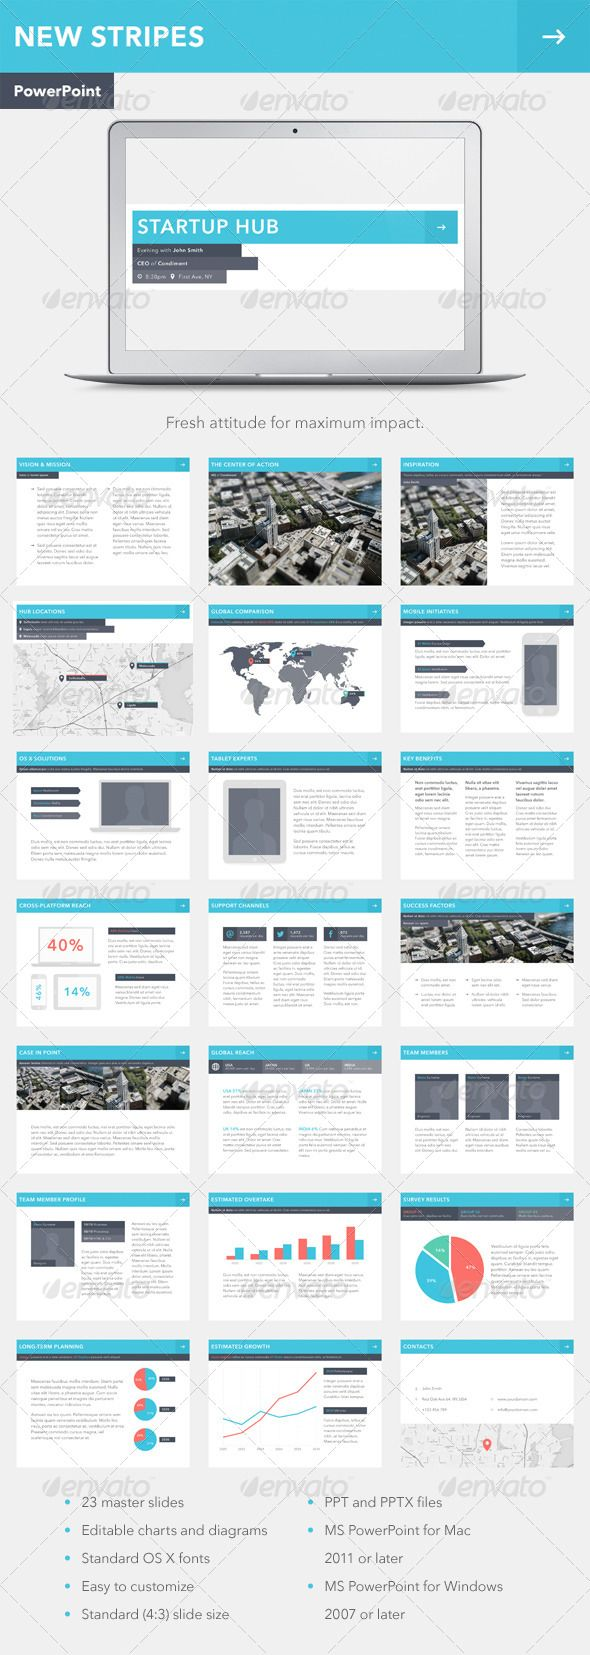 New Stripes PowerPoint Template (Powerpoint Templates)